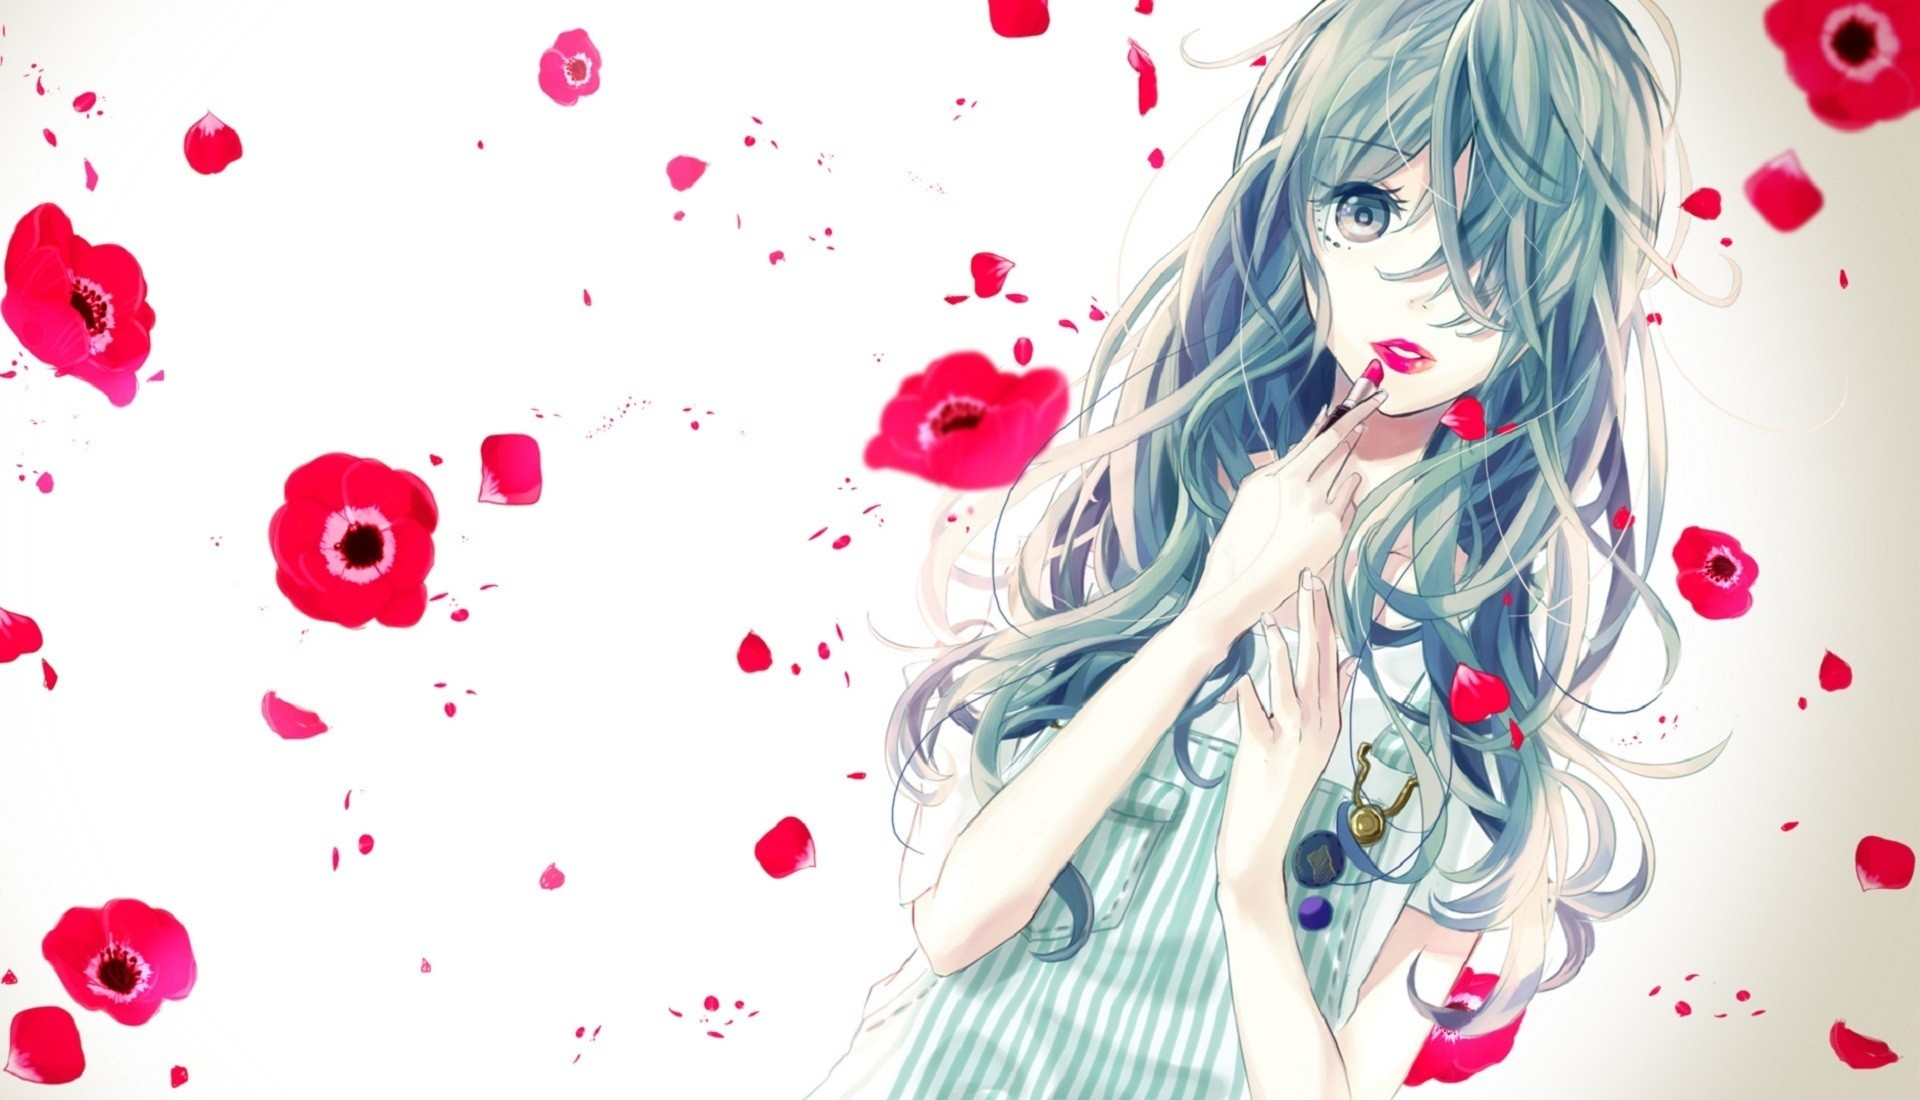 Cute girly wallpapers for laptop 64 images - Best girly anime ...